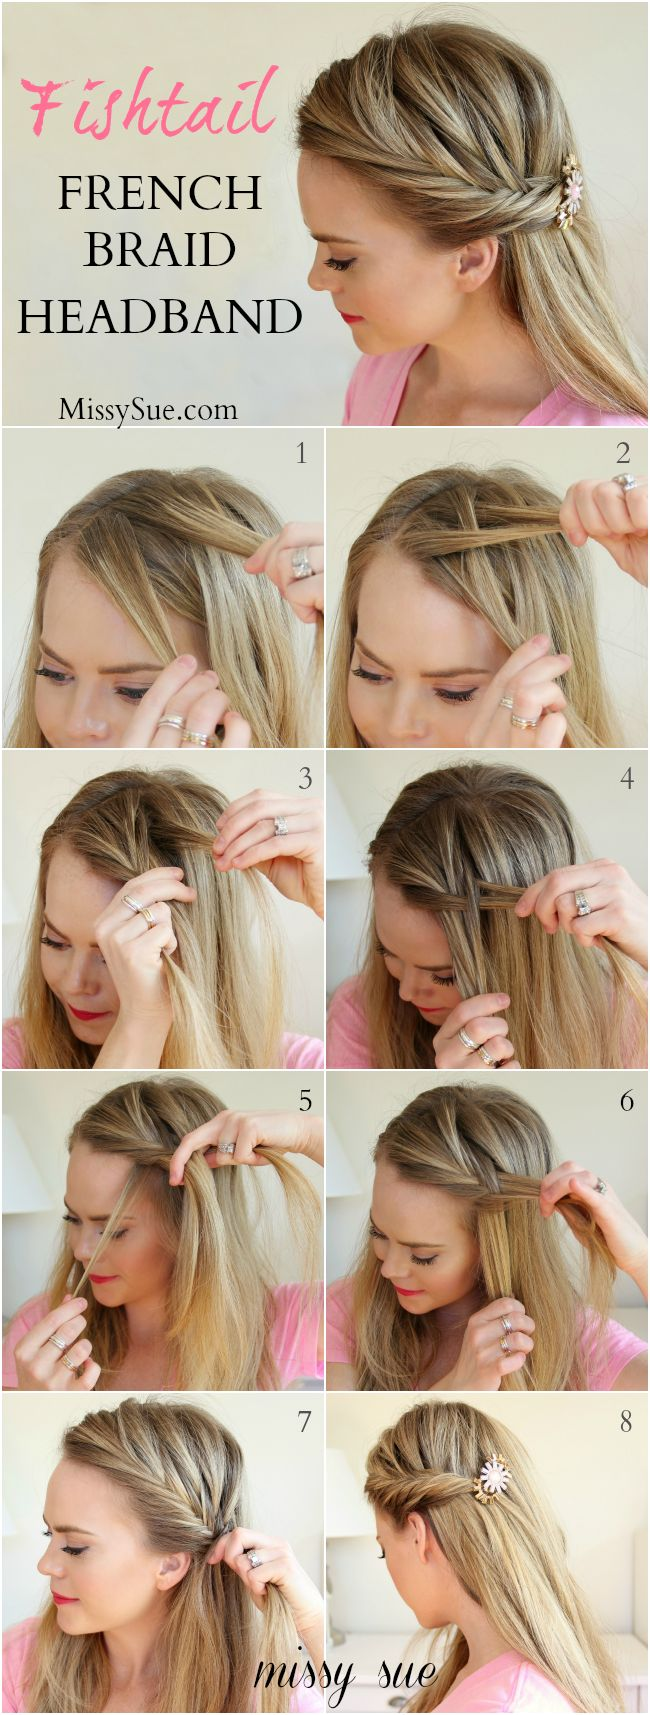 French braiding tips - Fishtail French Braid Headband Missysue Com